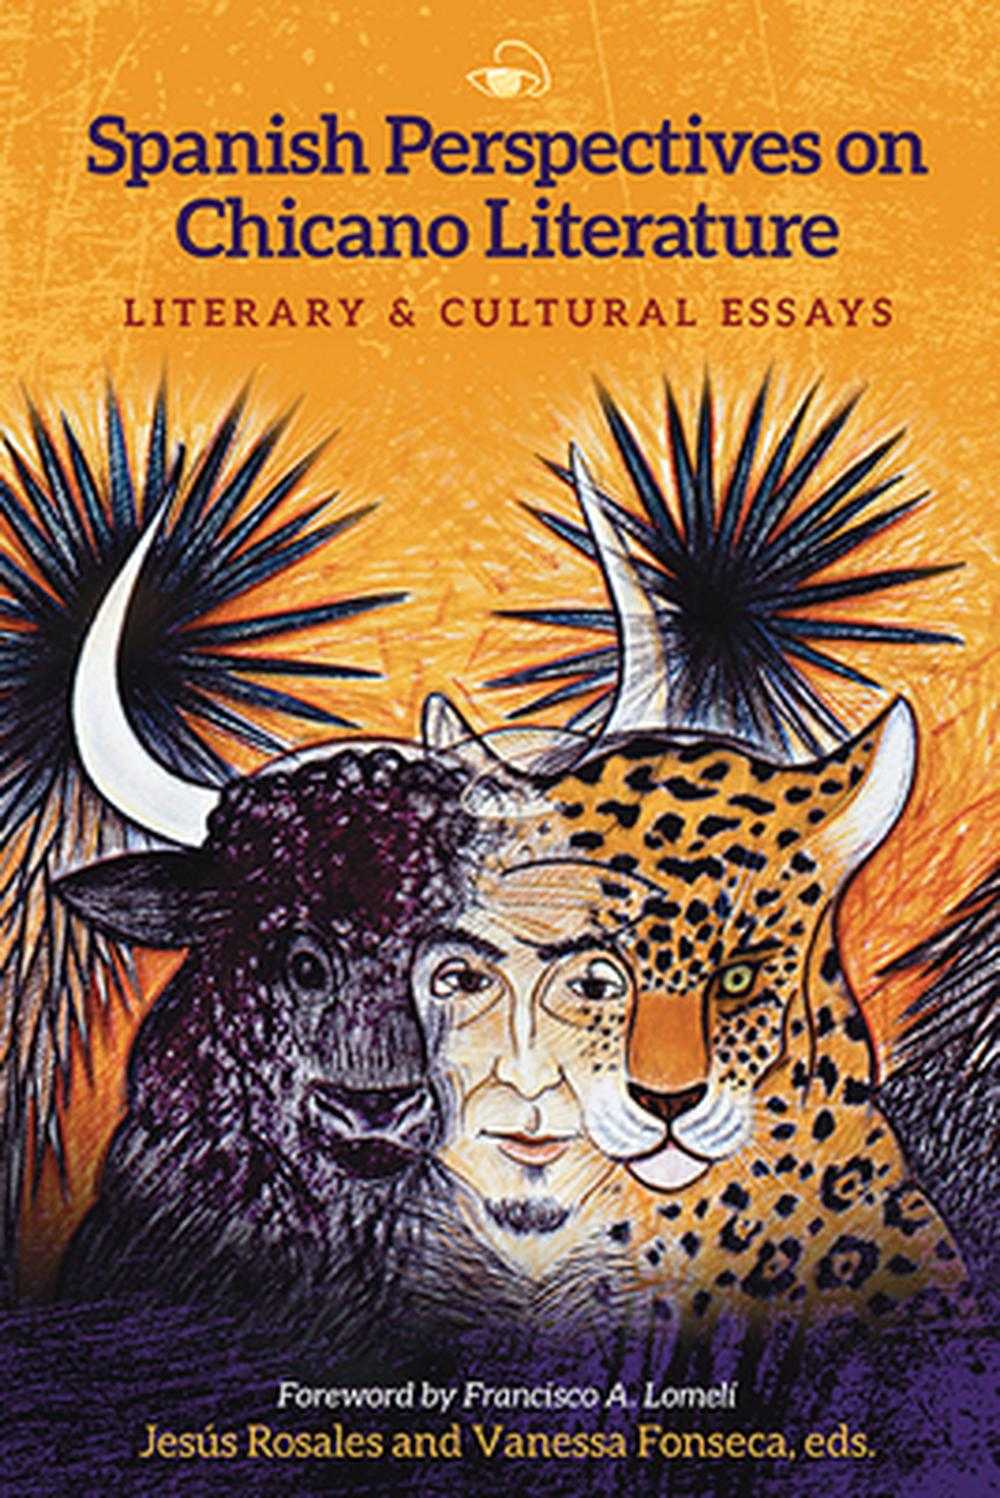 spanish perspectives on chicano literature literary and cultural  spanish perspectives on chicano literature literary and cultural essays